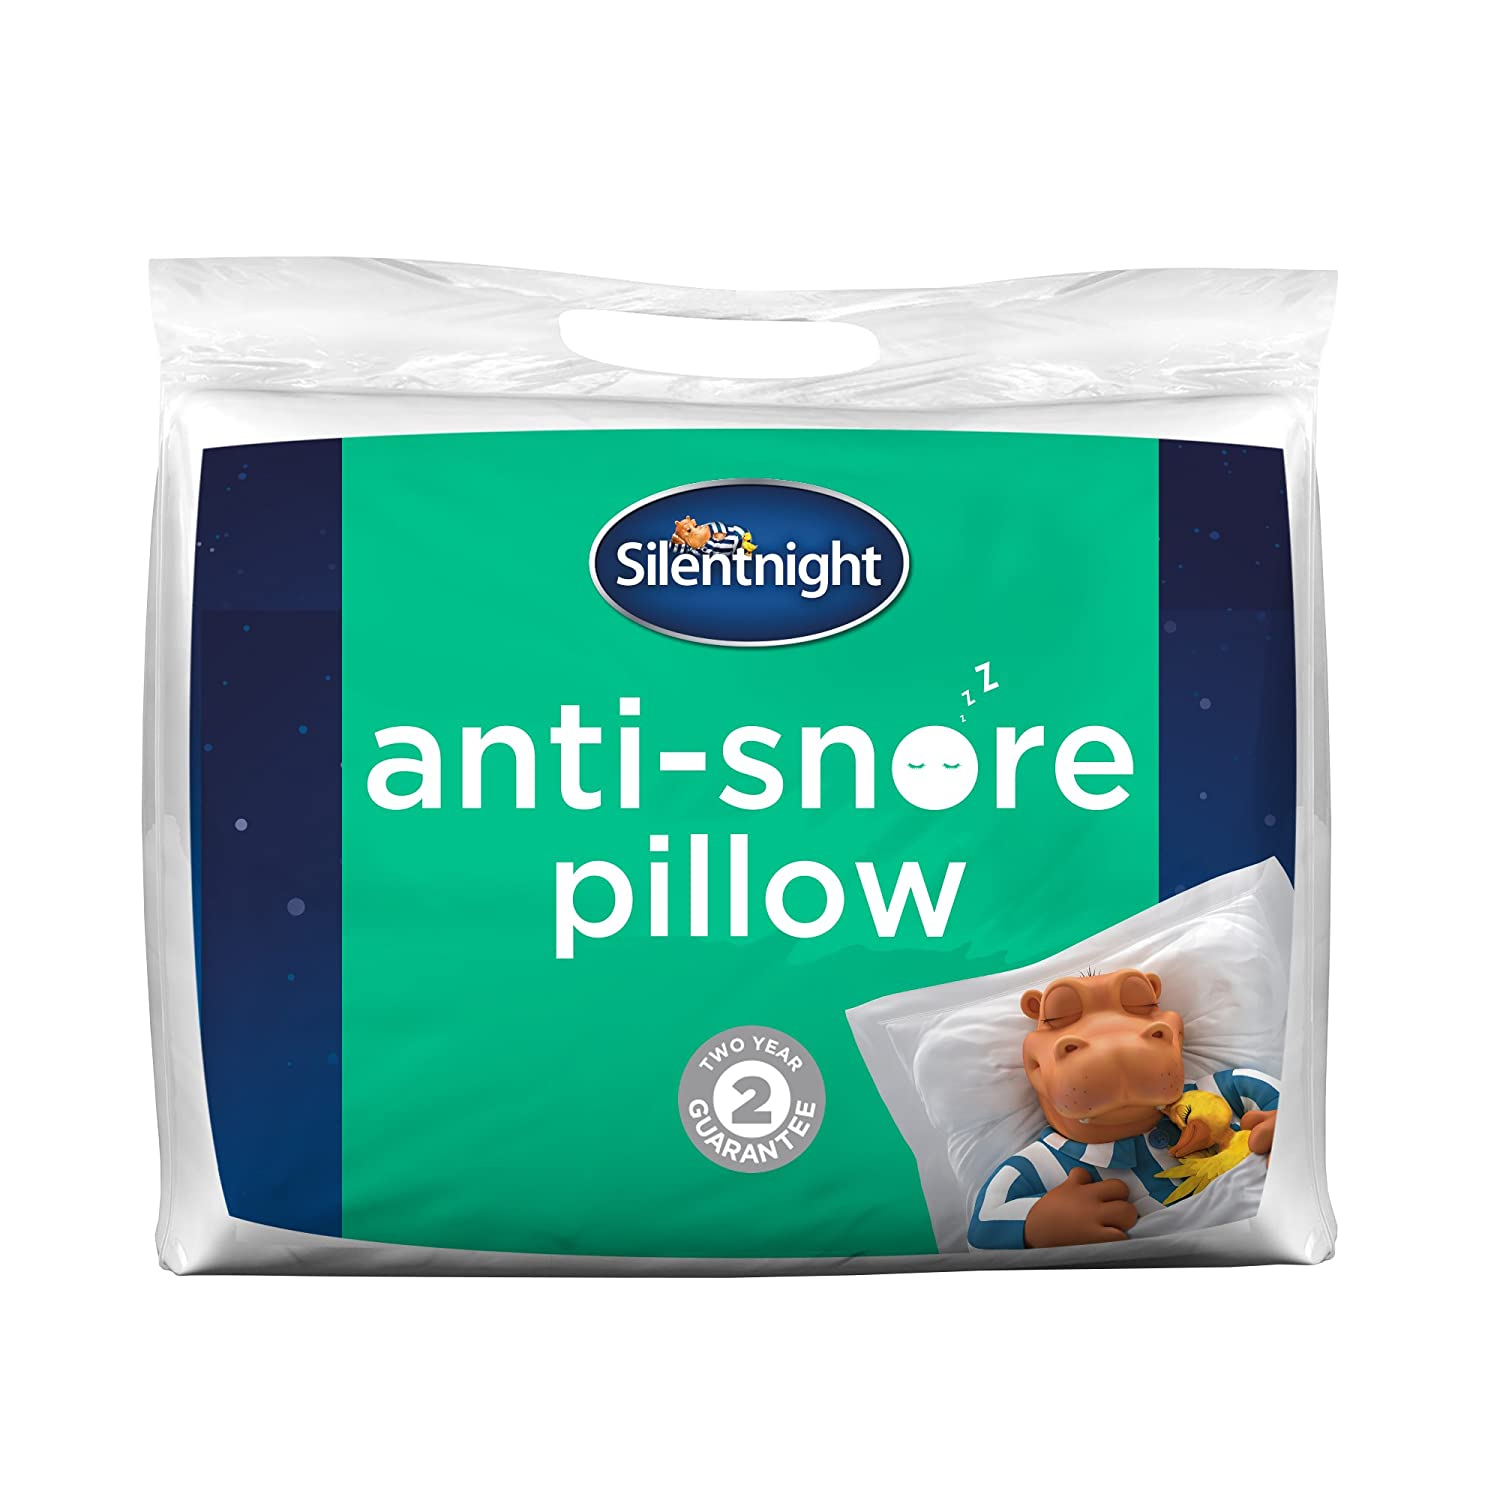 Silentnight Anti-Snore Pillow 341882GE